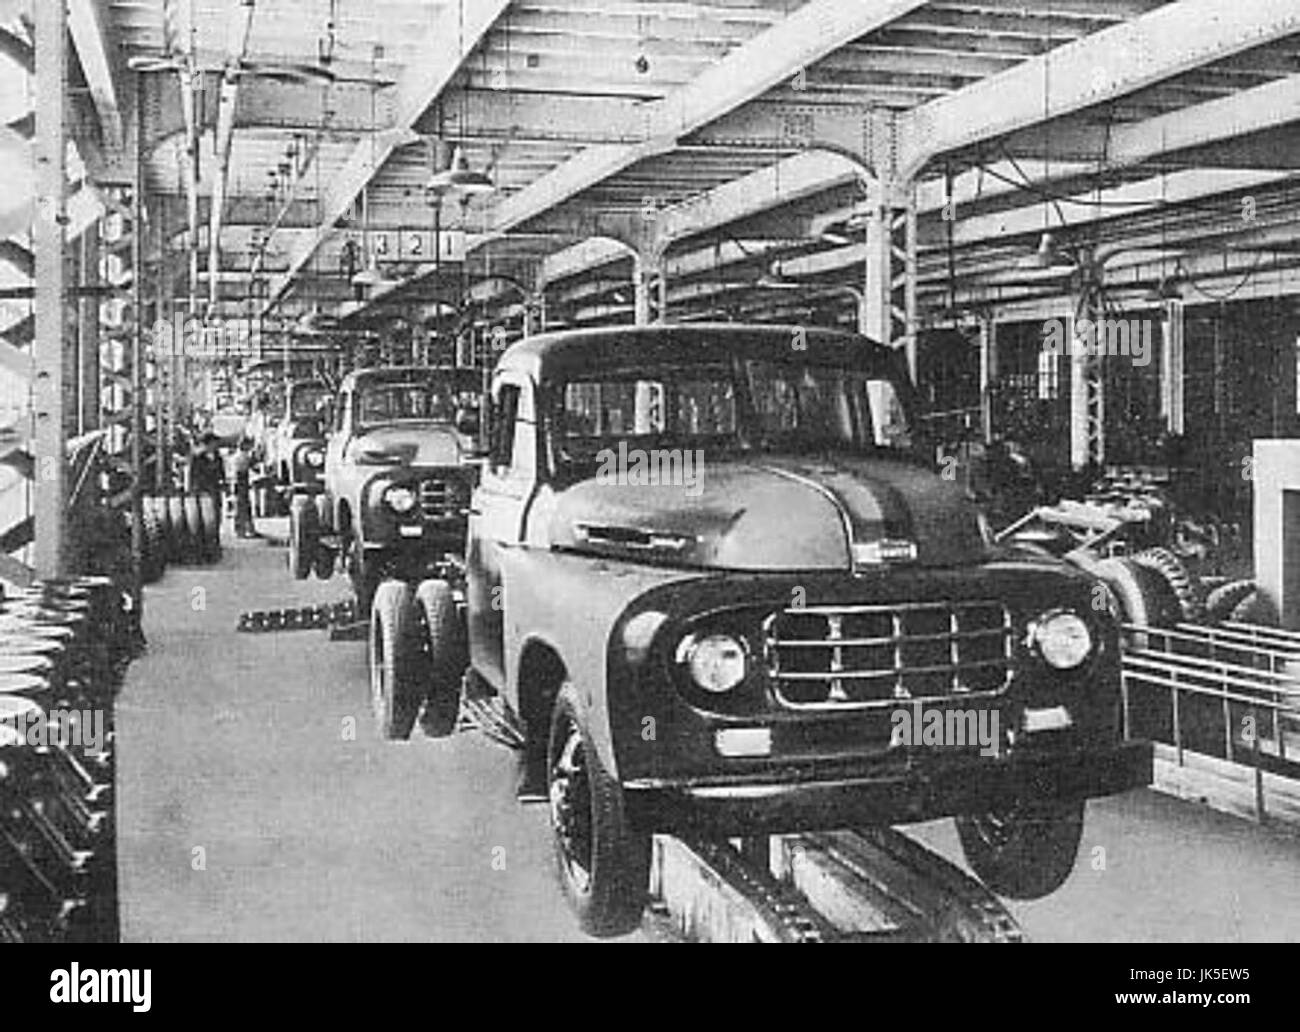 Mass production at a Toyota plant in the 1950s - Stock Image